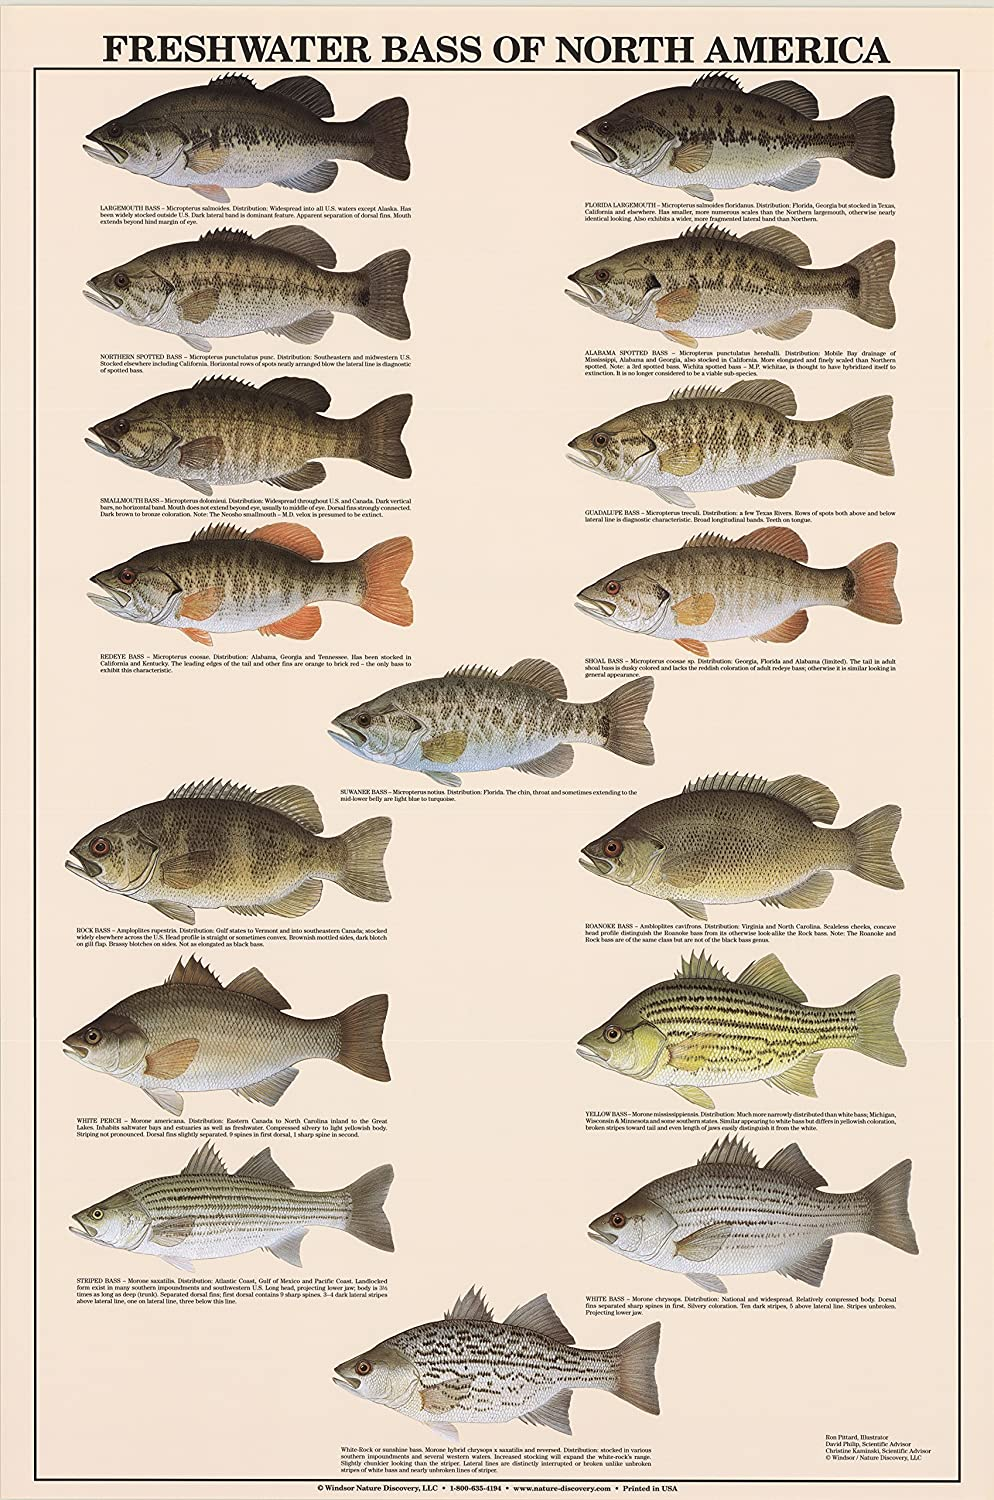 Amazon Com Freshwater Bass Fish Poster And Identification Chart Home Kitchen